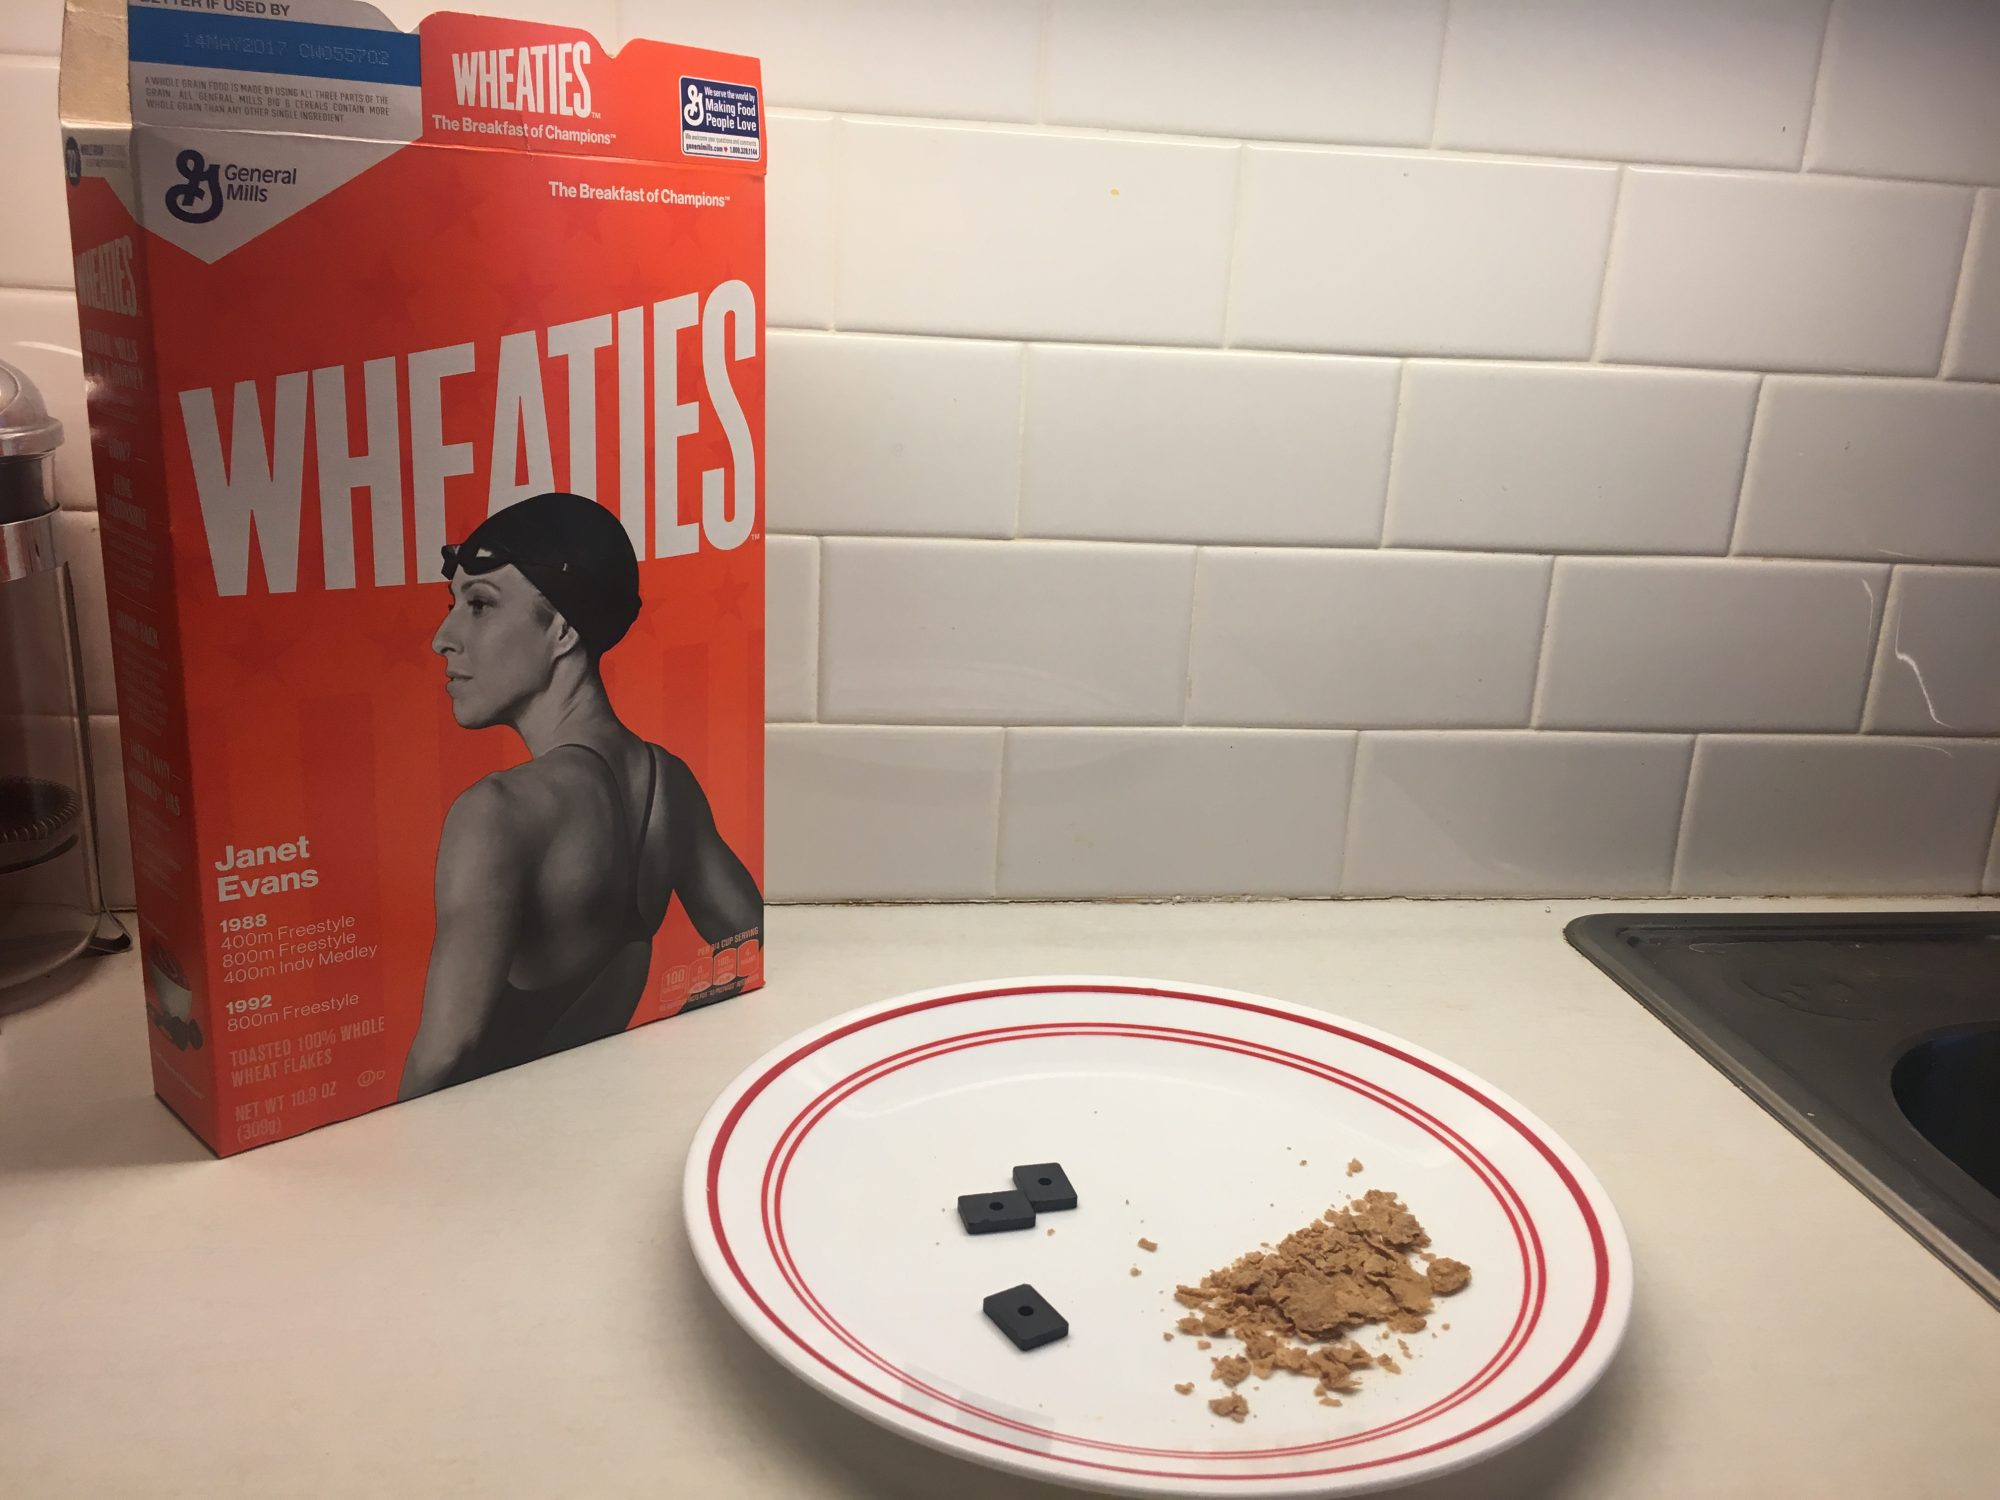 EC: I Tried to Magnetize My Wheaties